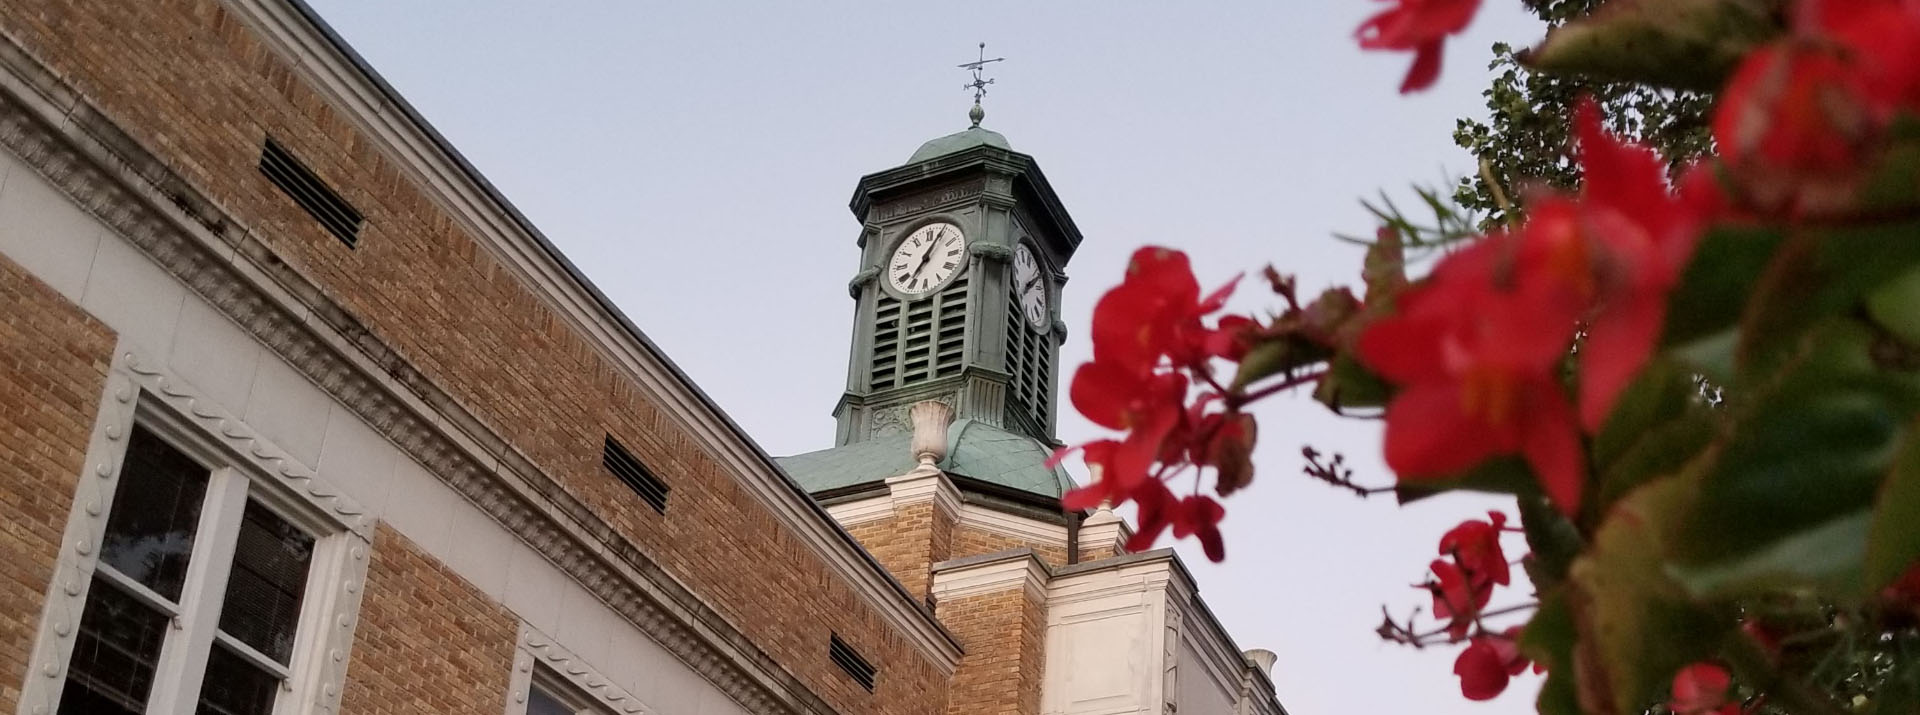 Clocktower on the courthouse in Somerville